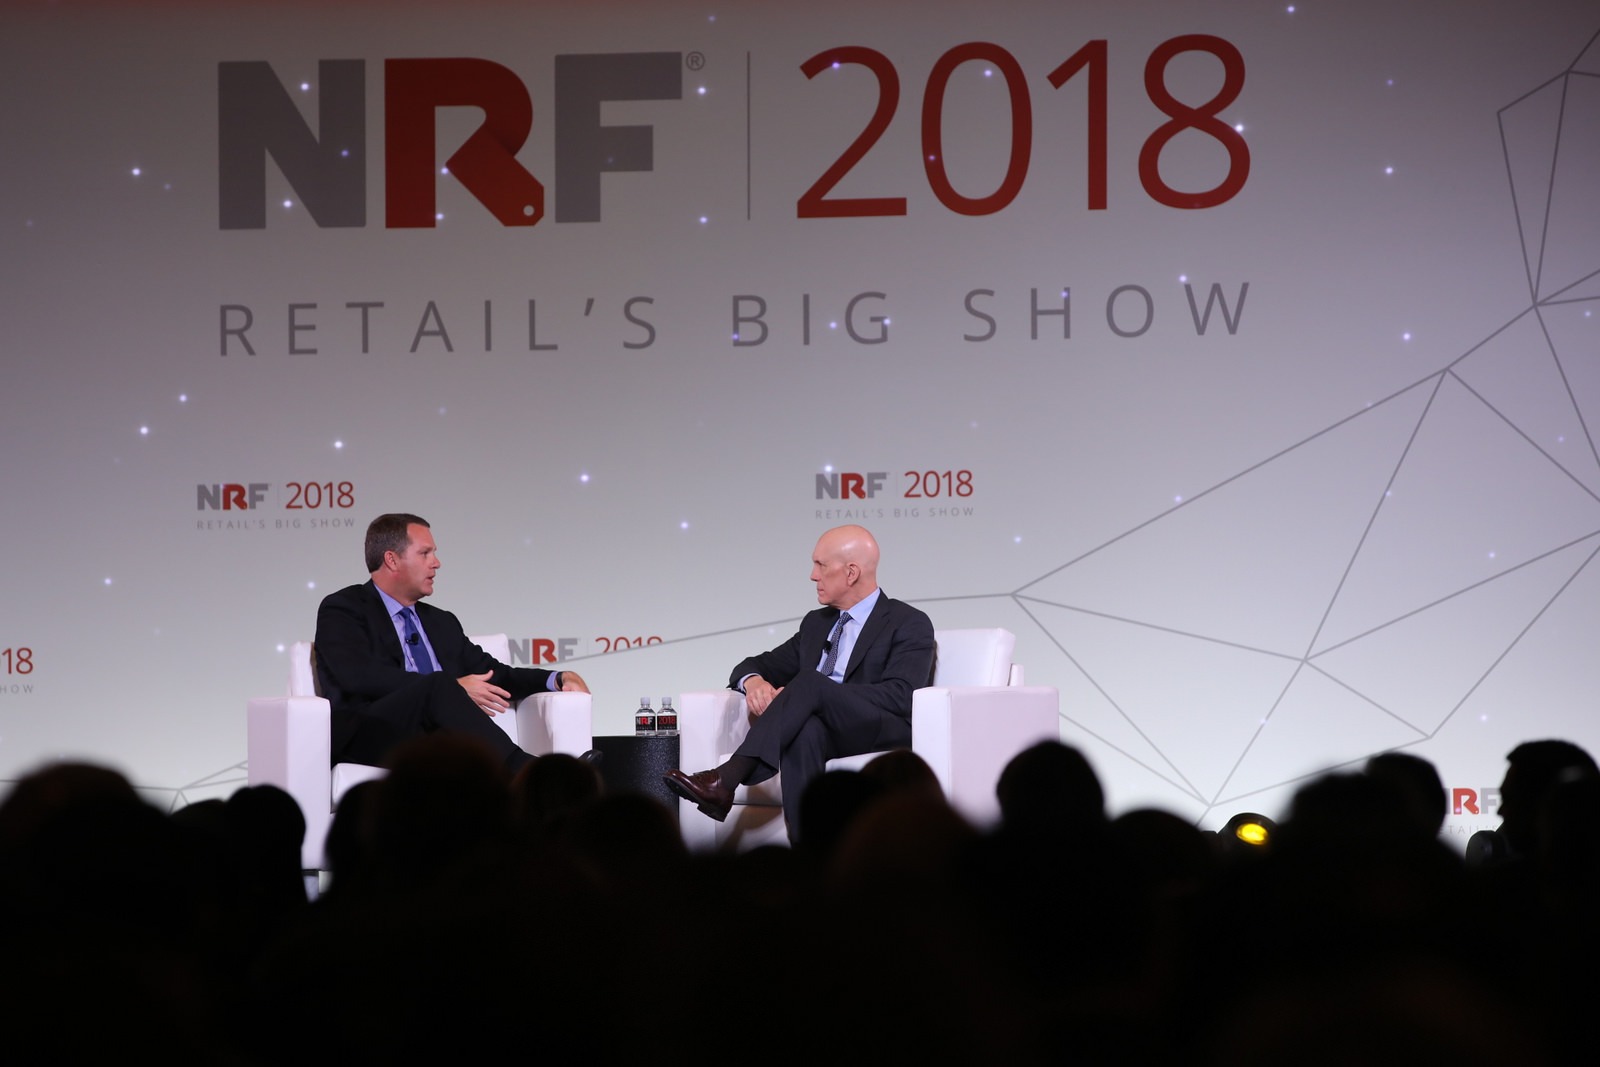 Doug Mc Millon à conversa com Mathew Shay, presidente da National Retail Federation, no primeiro dia do Retail's Big Show 2018